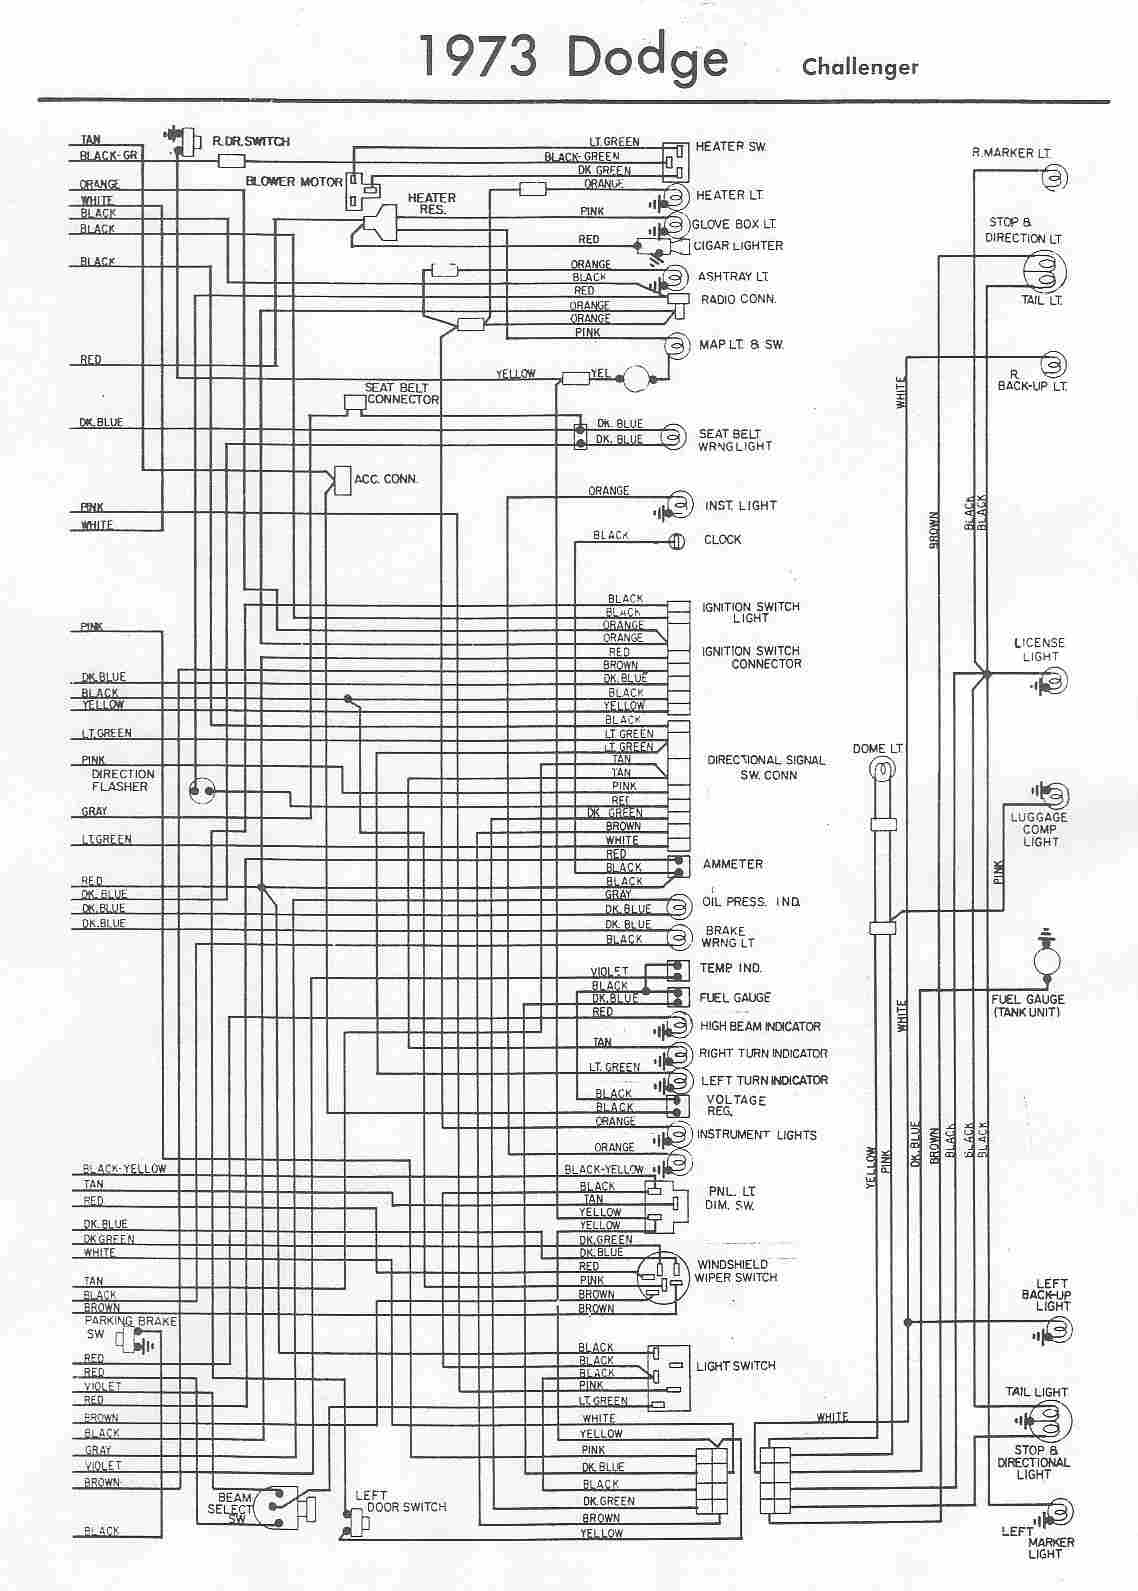 Dodge Car Manuals Wiring Diagrams Pdf Fault Codes 2006 Sprinter Ac Diagram Electrical Of 1973 Challenger